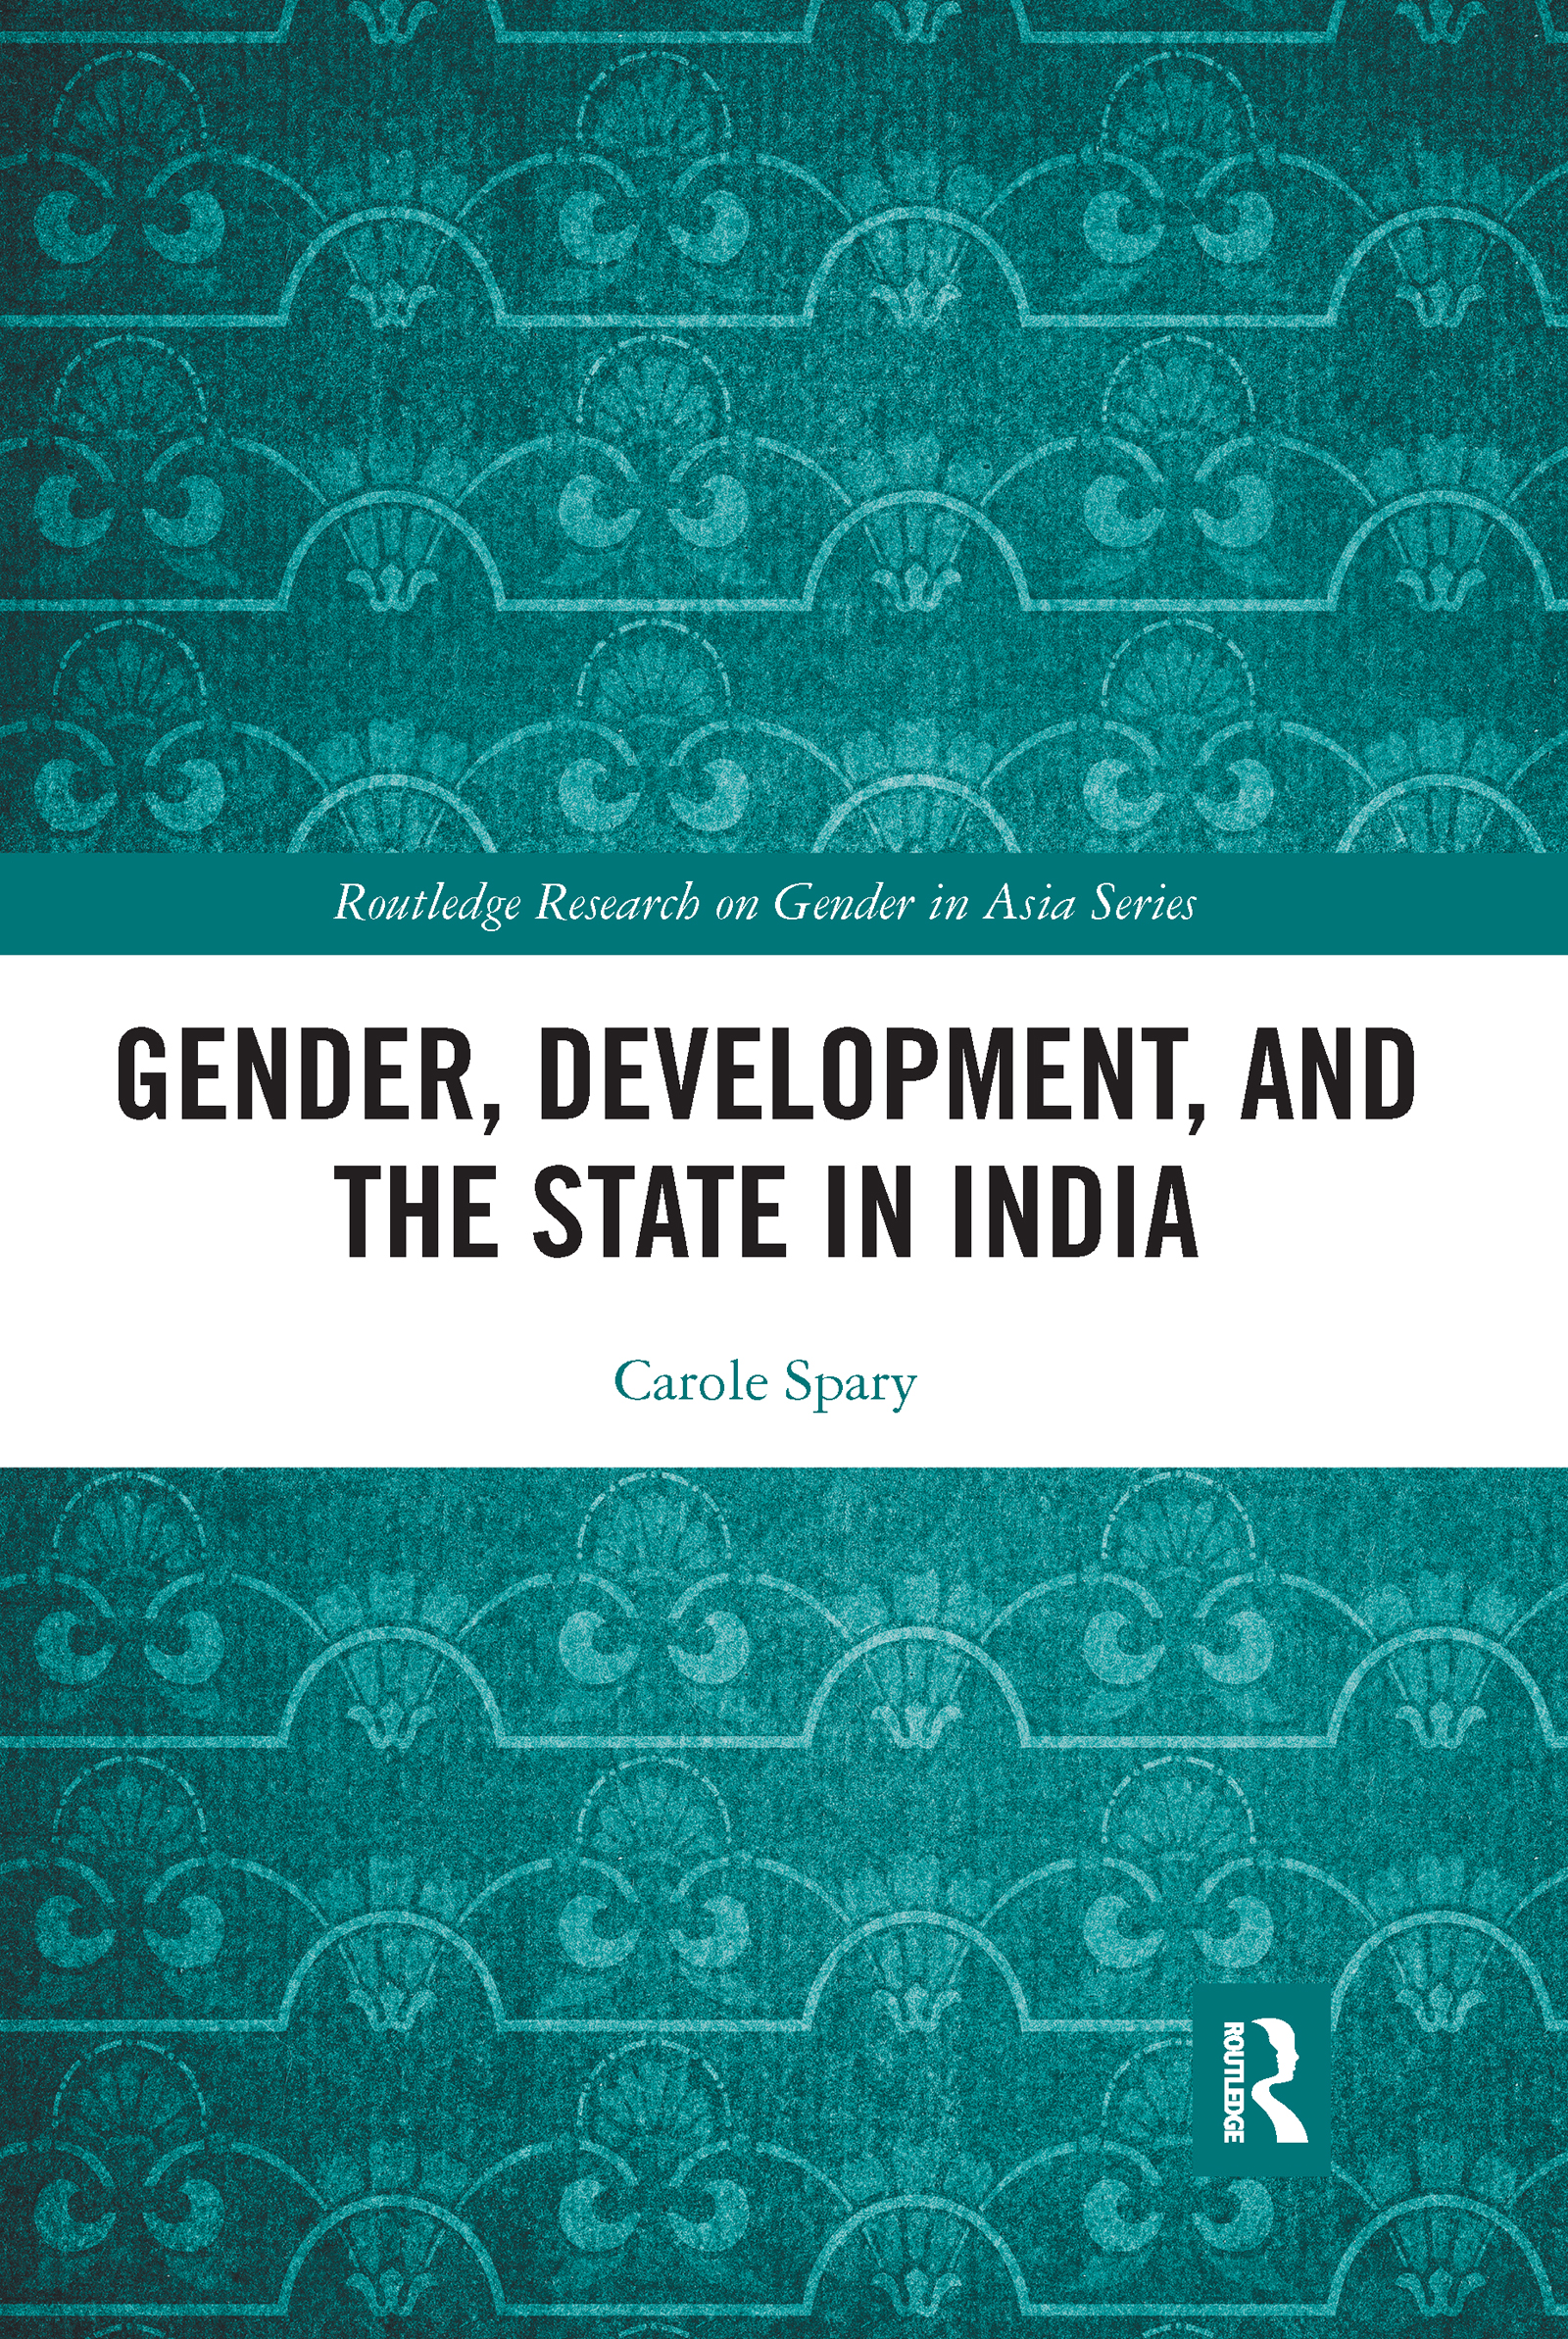 Gender, Development, and the State in India